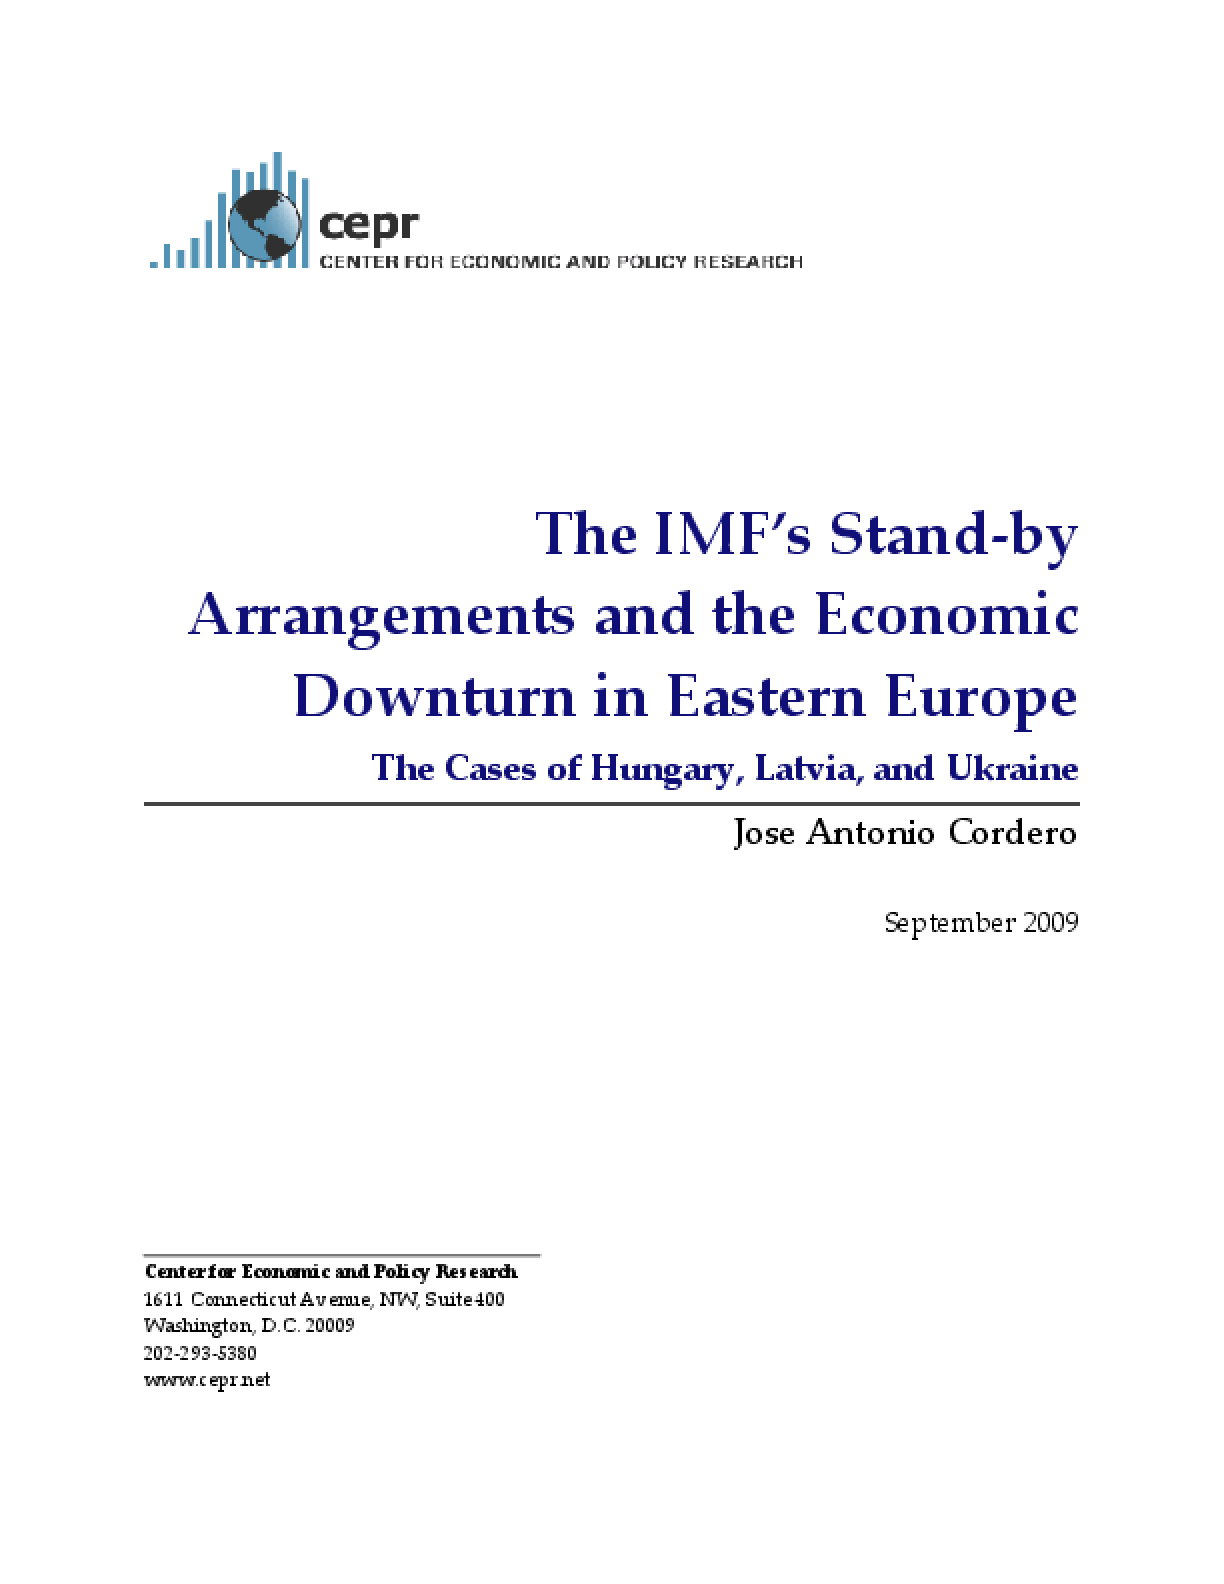 The IMF's Stand-by Arrangements and the Economic Downturn in Eastern Europe: The Cases of Hungary, Latvia, and Ukraine